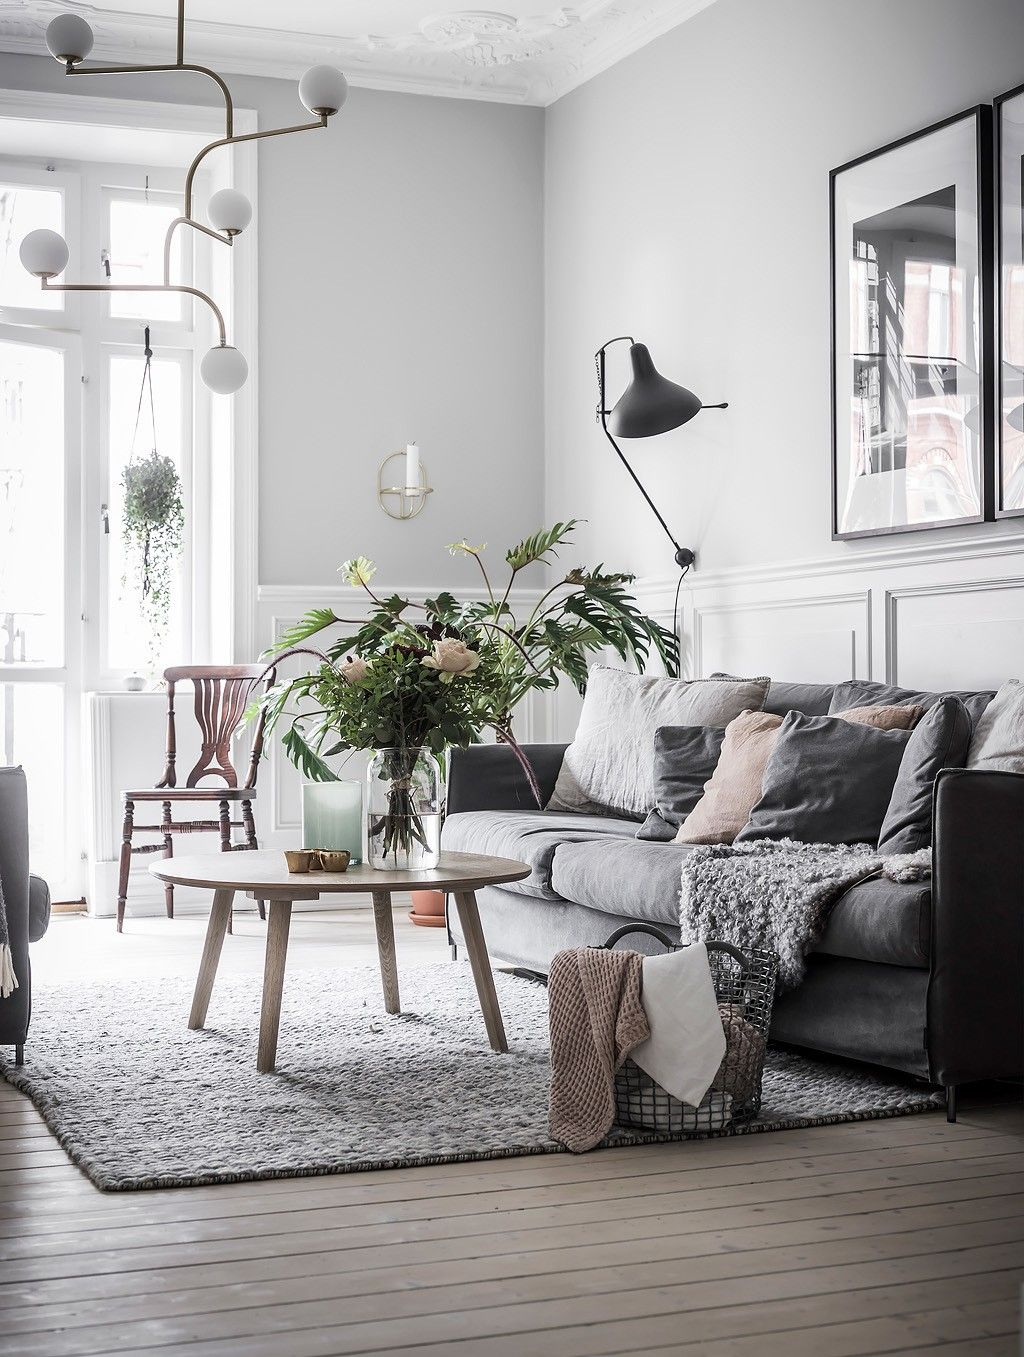 Scandinavian  It's All About Interior  Pinterest  Living Rooms Cool Living Room Design For Small Spaces Inspiration Design